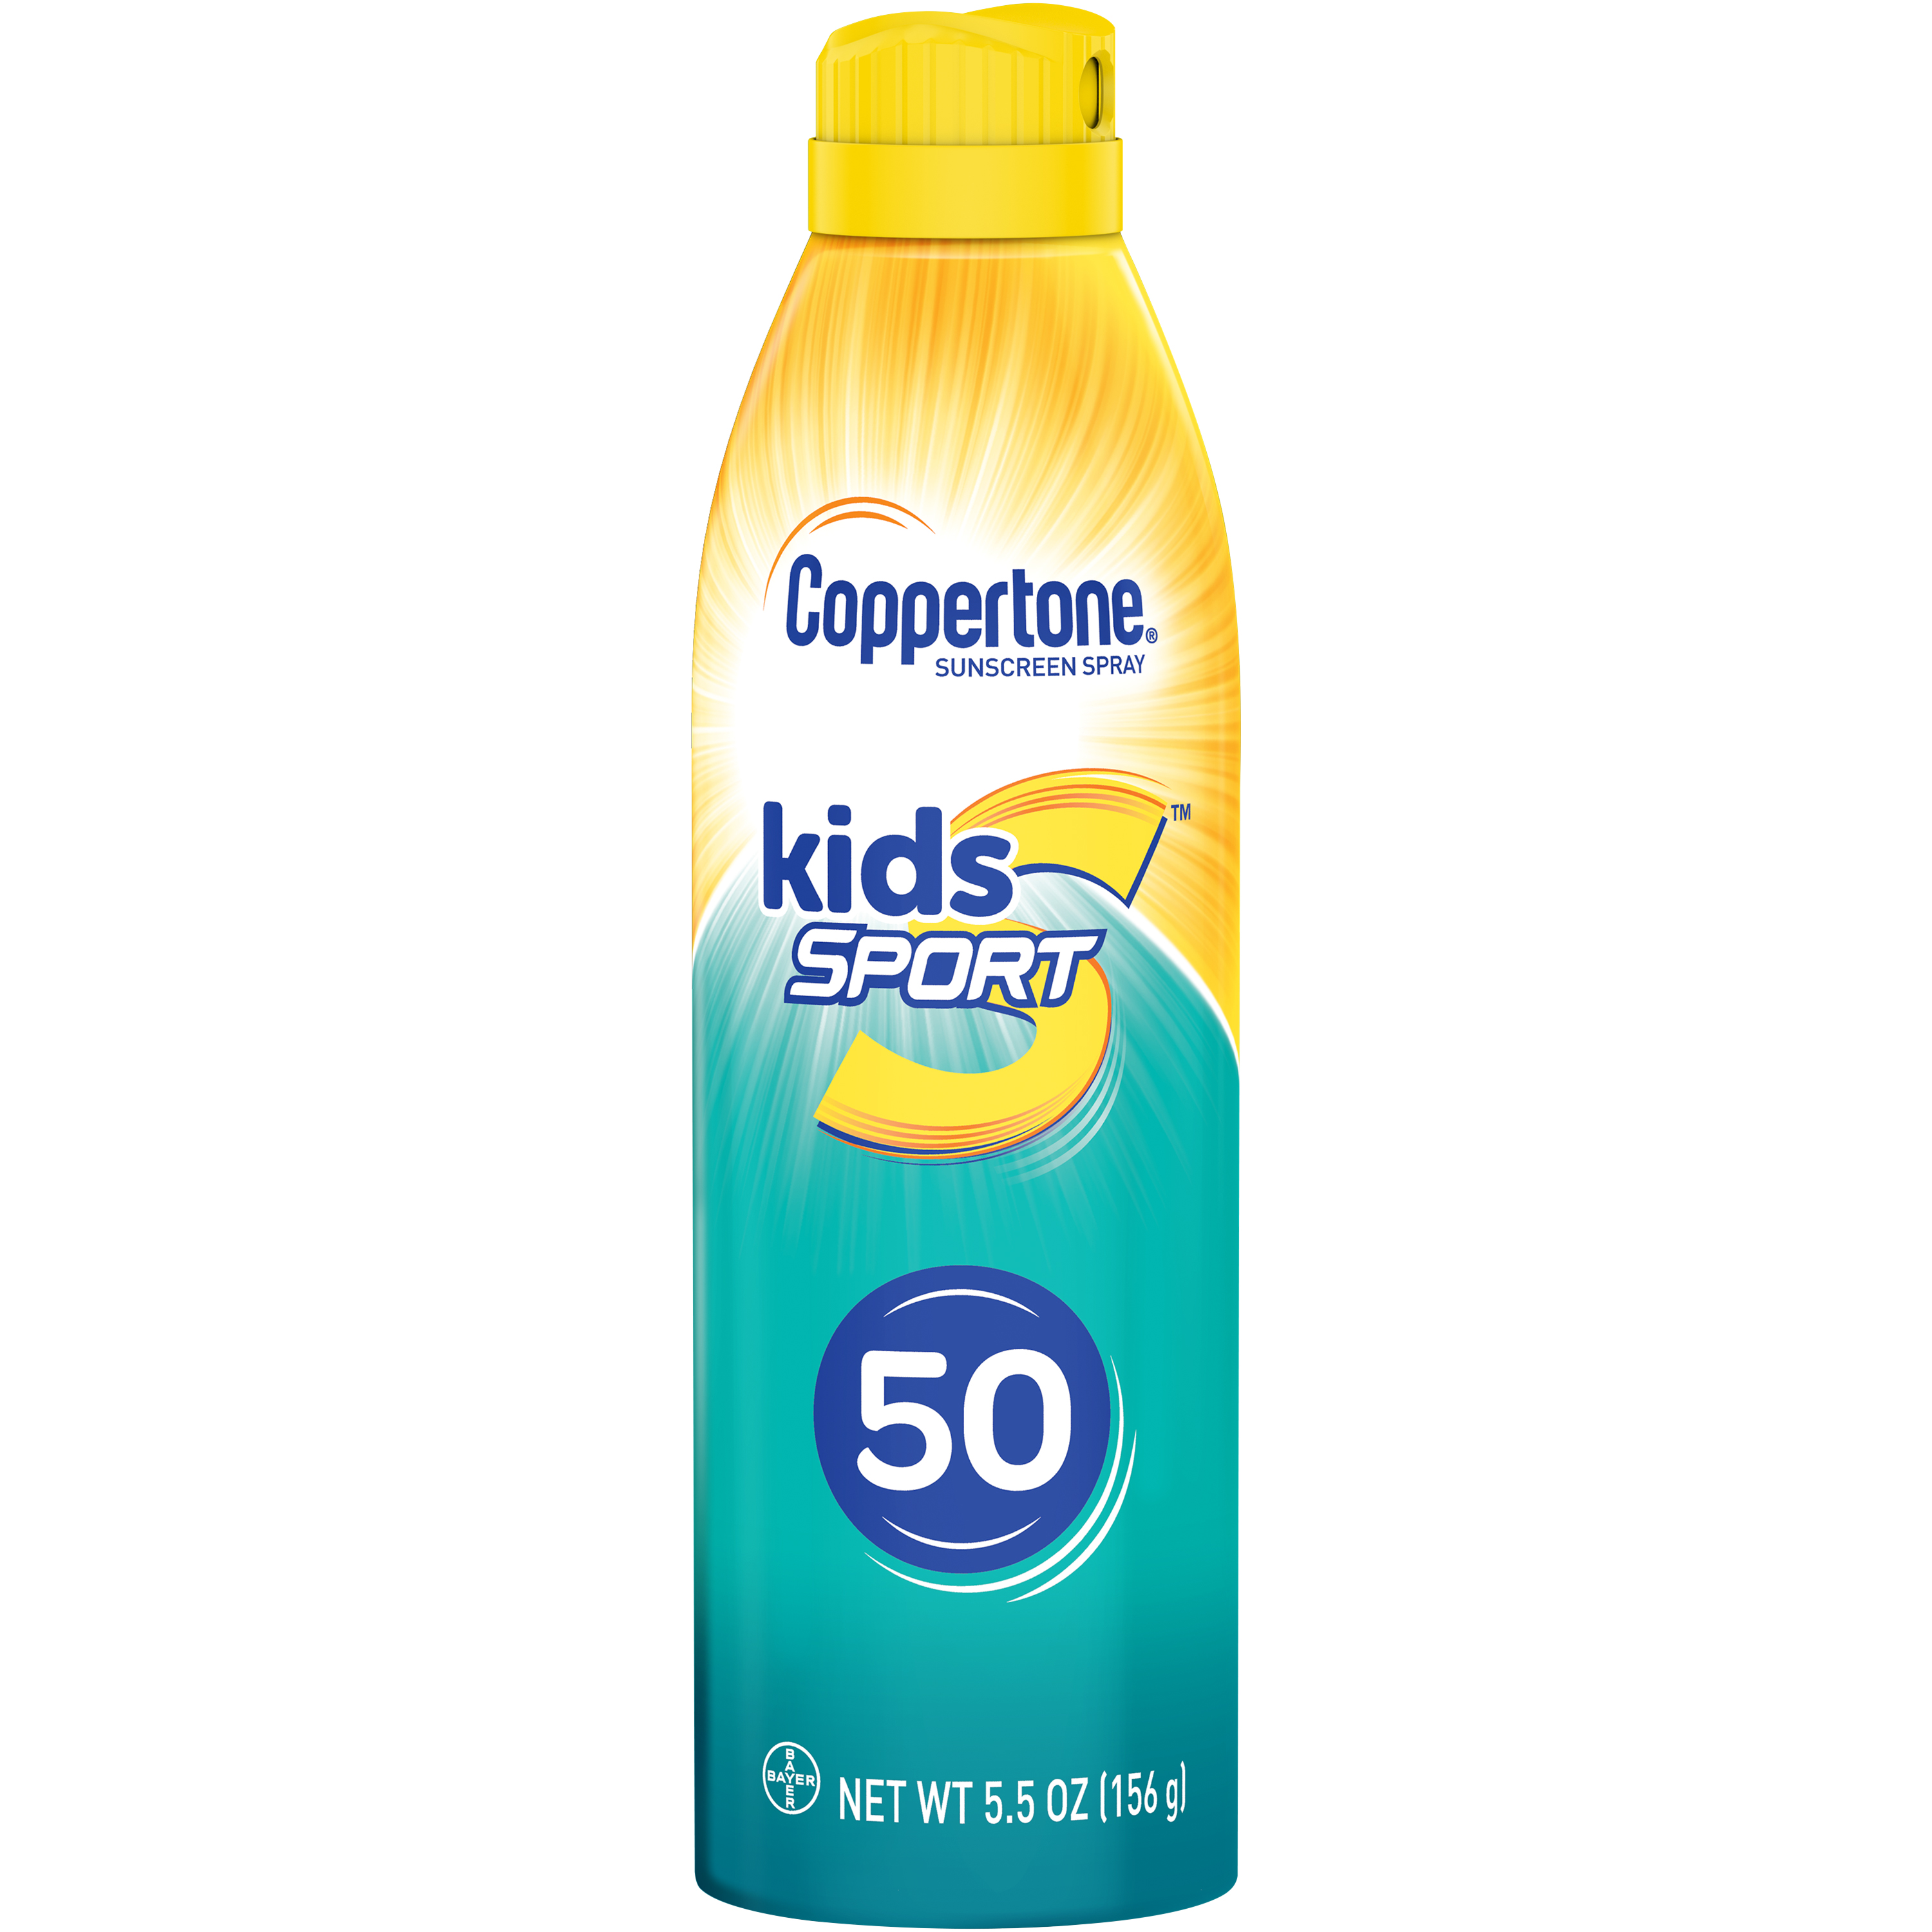 Coppertone Kids Sport Sunscreen Water Resistant Spray SPF 50 5.5 oz